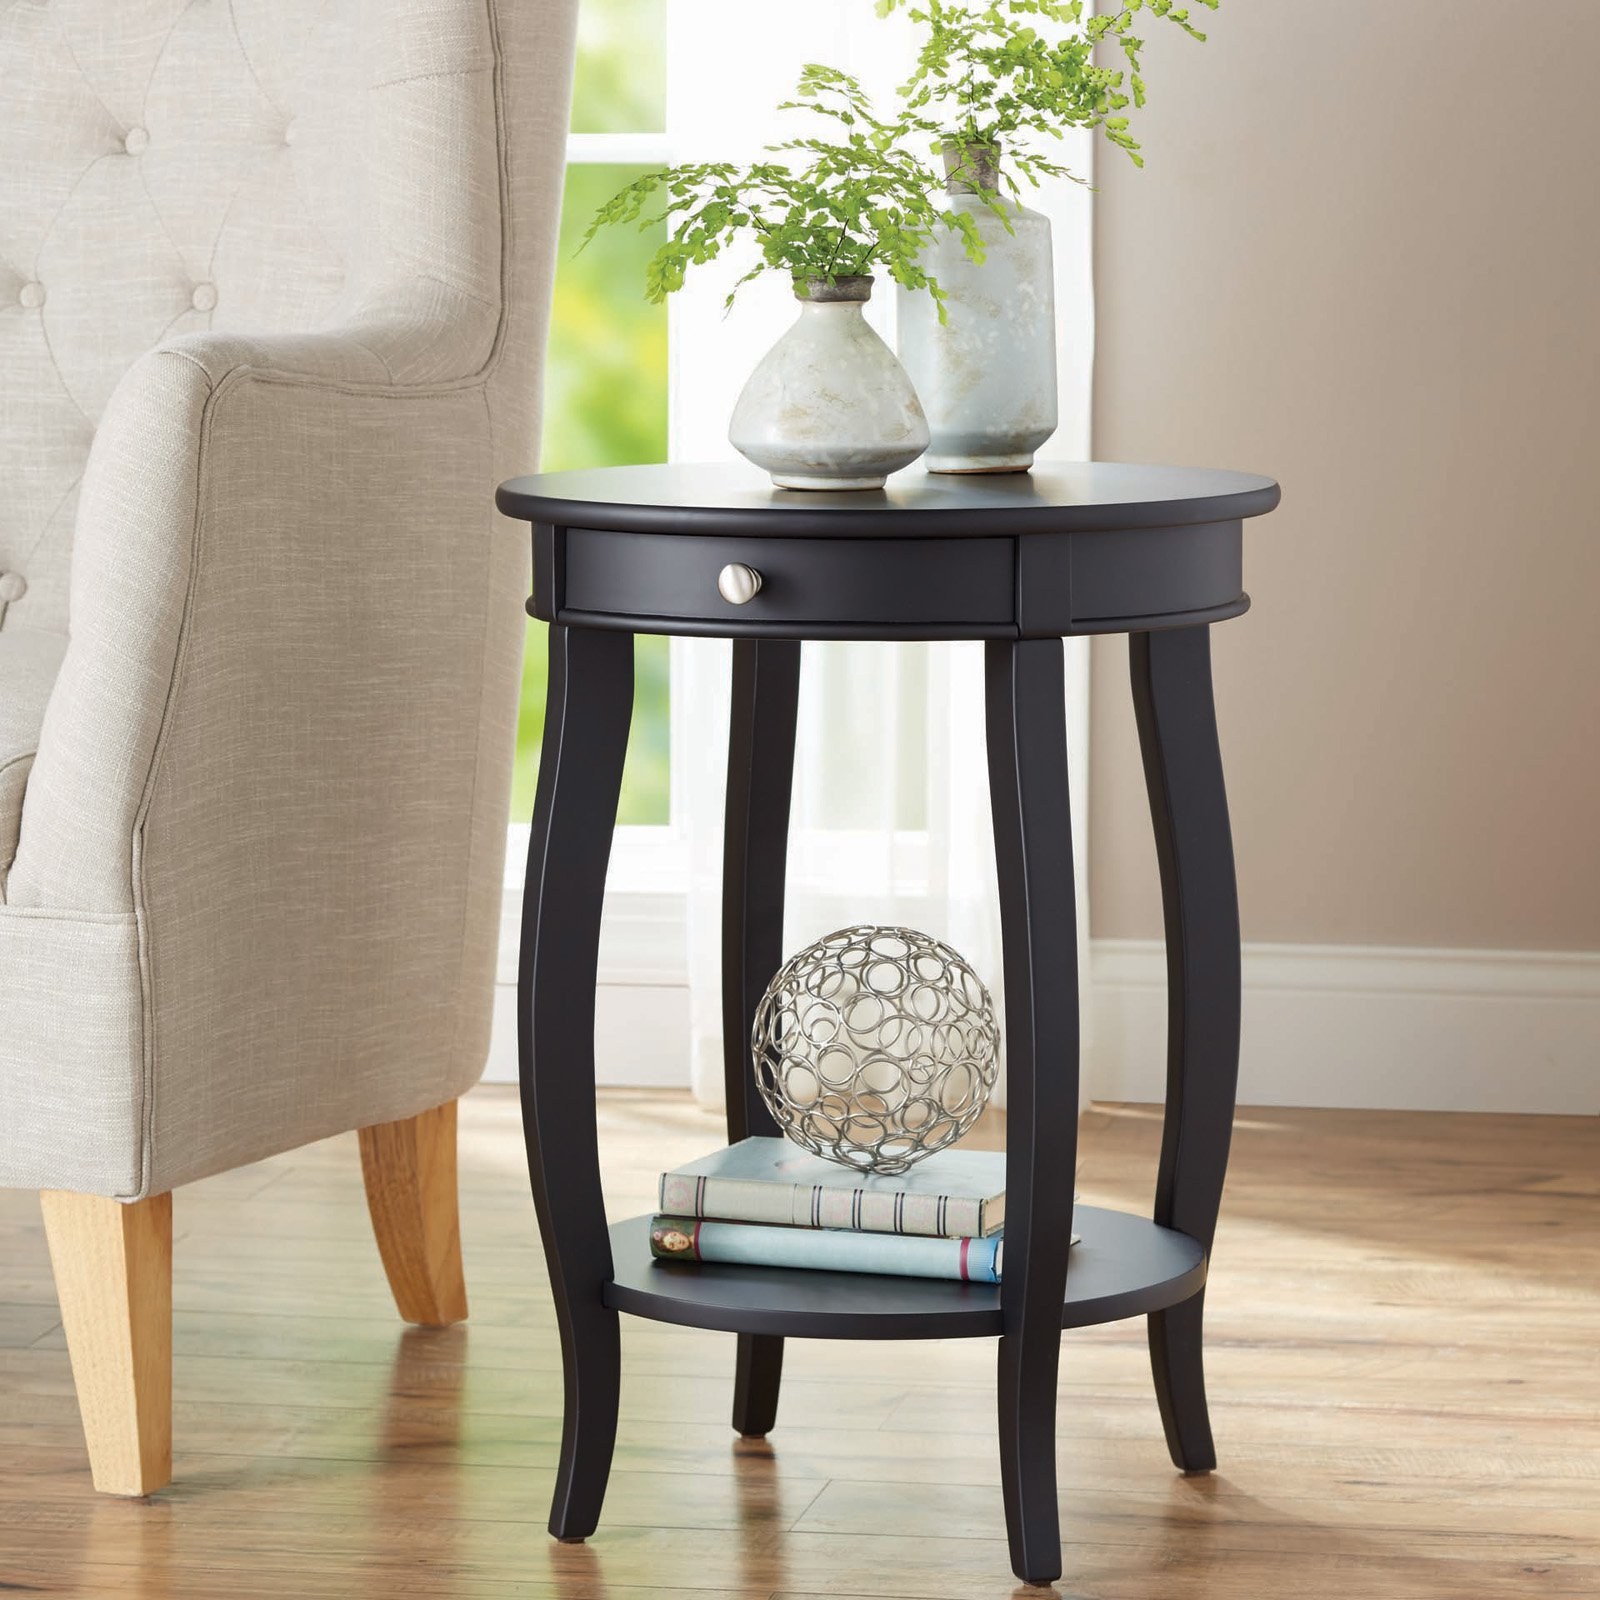 better homes gardens round accent table with drawer multiple storage black room essentials colors cherry wood dining furniture ceramic door knobs skinny console ikea pottery barn